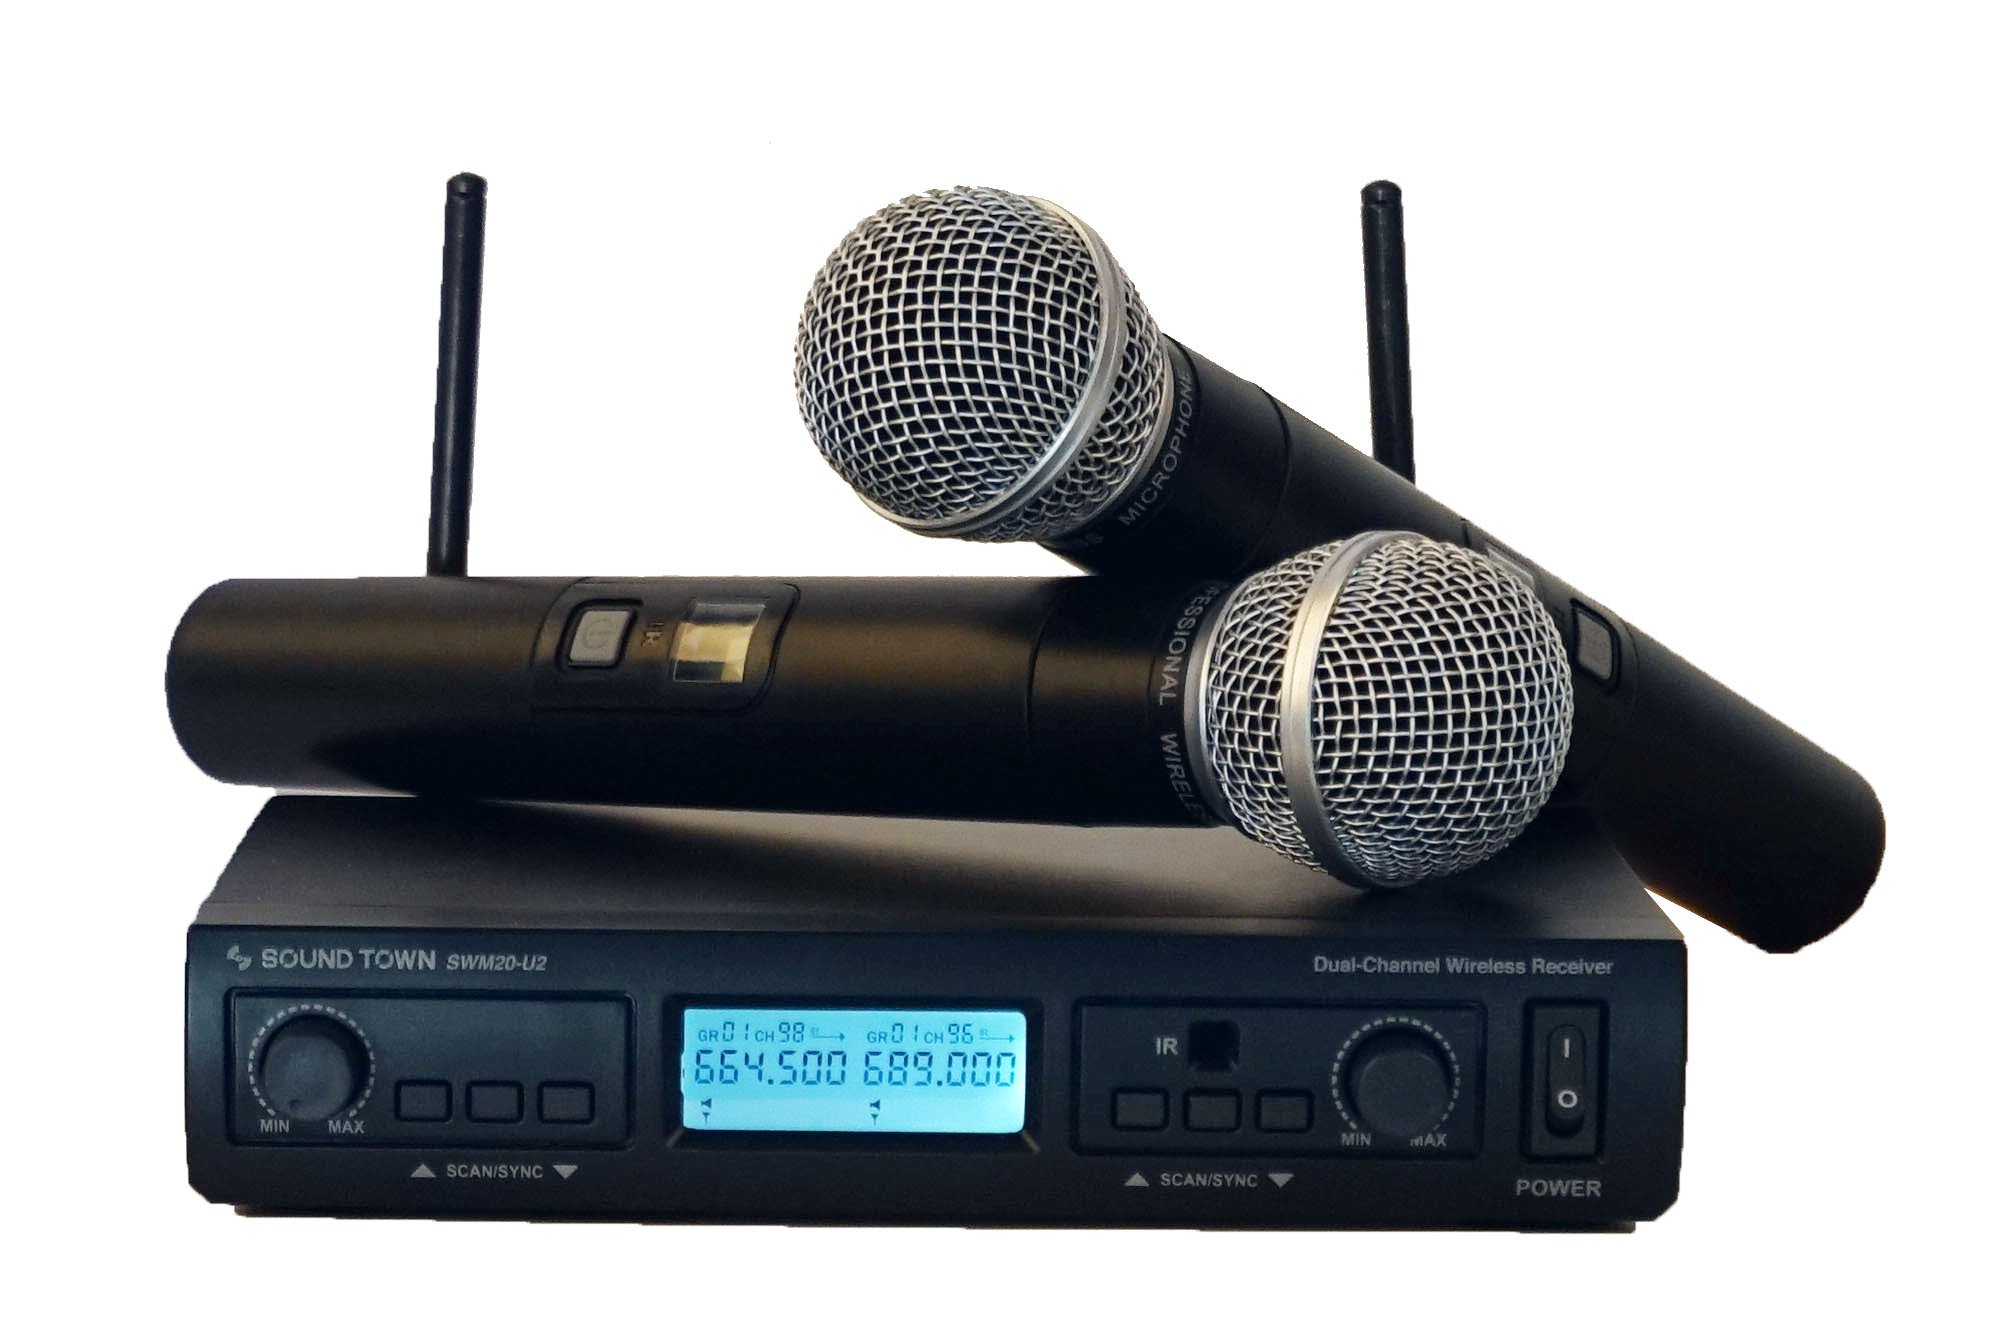 Sound Town Professional Dual-Channel UHF Handheld Wireless Microphone System with Selectable Frequencies,2 Handheld Mics (SWM20-U2HH)